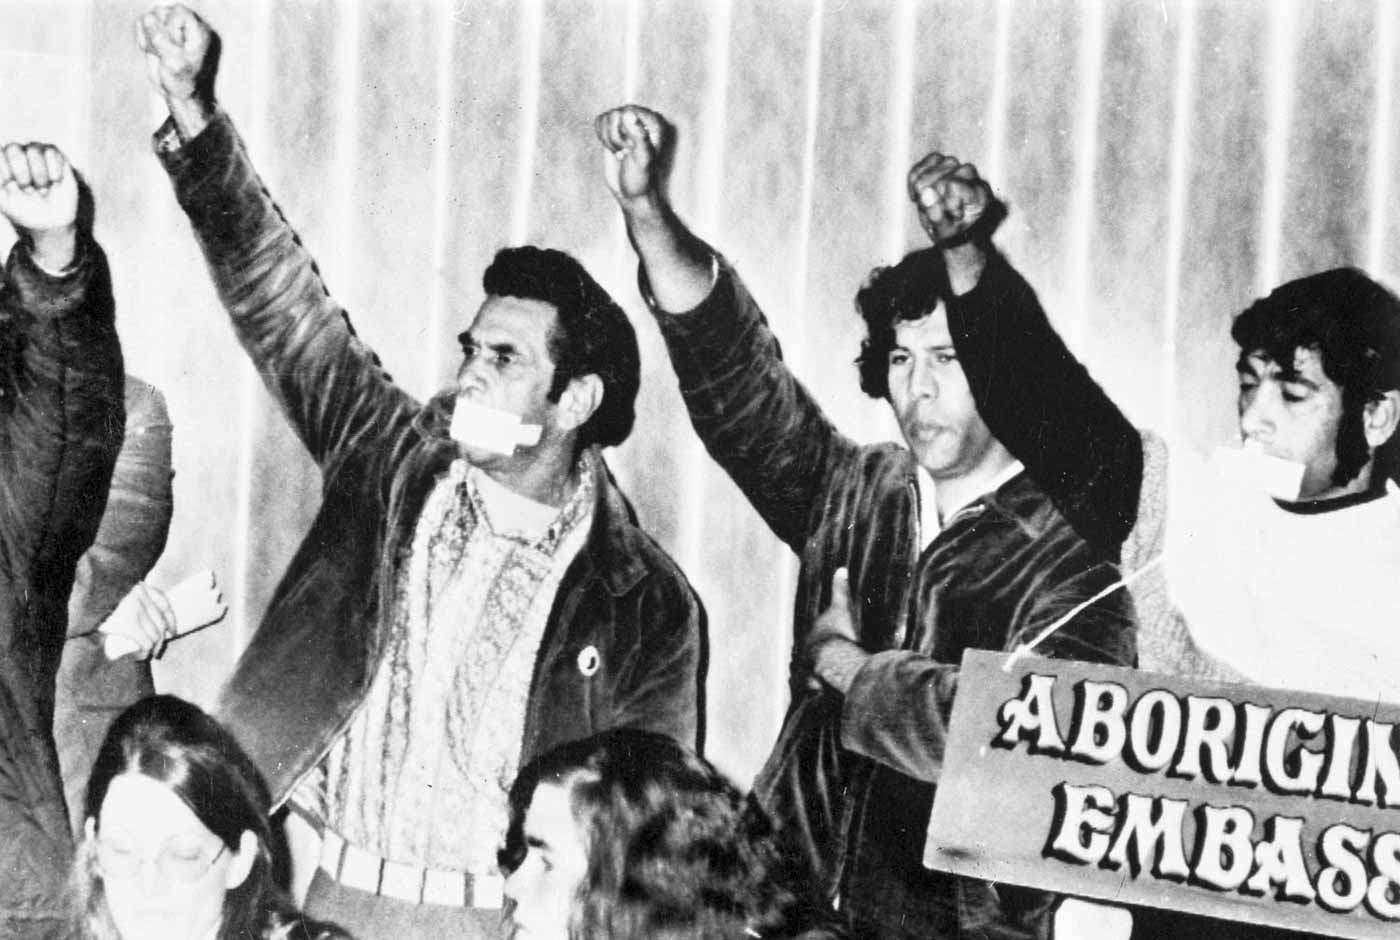 Black and white photo of protesters holding their arms up in salute. Two men have their mouths taped and one is holding a sign that reads: 'ABORIGINAL EMBASSY' - click to view larger image